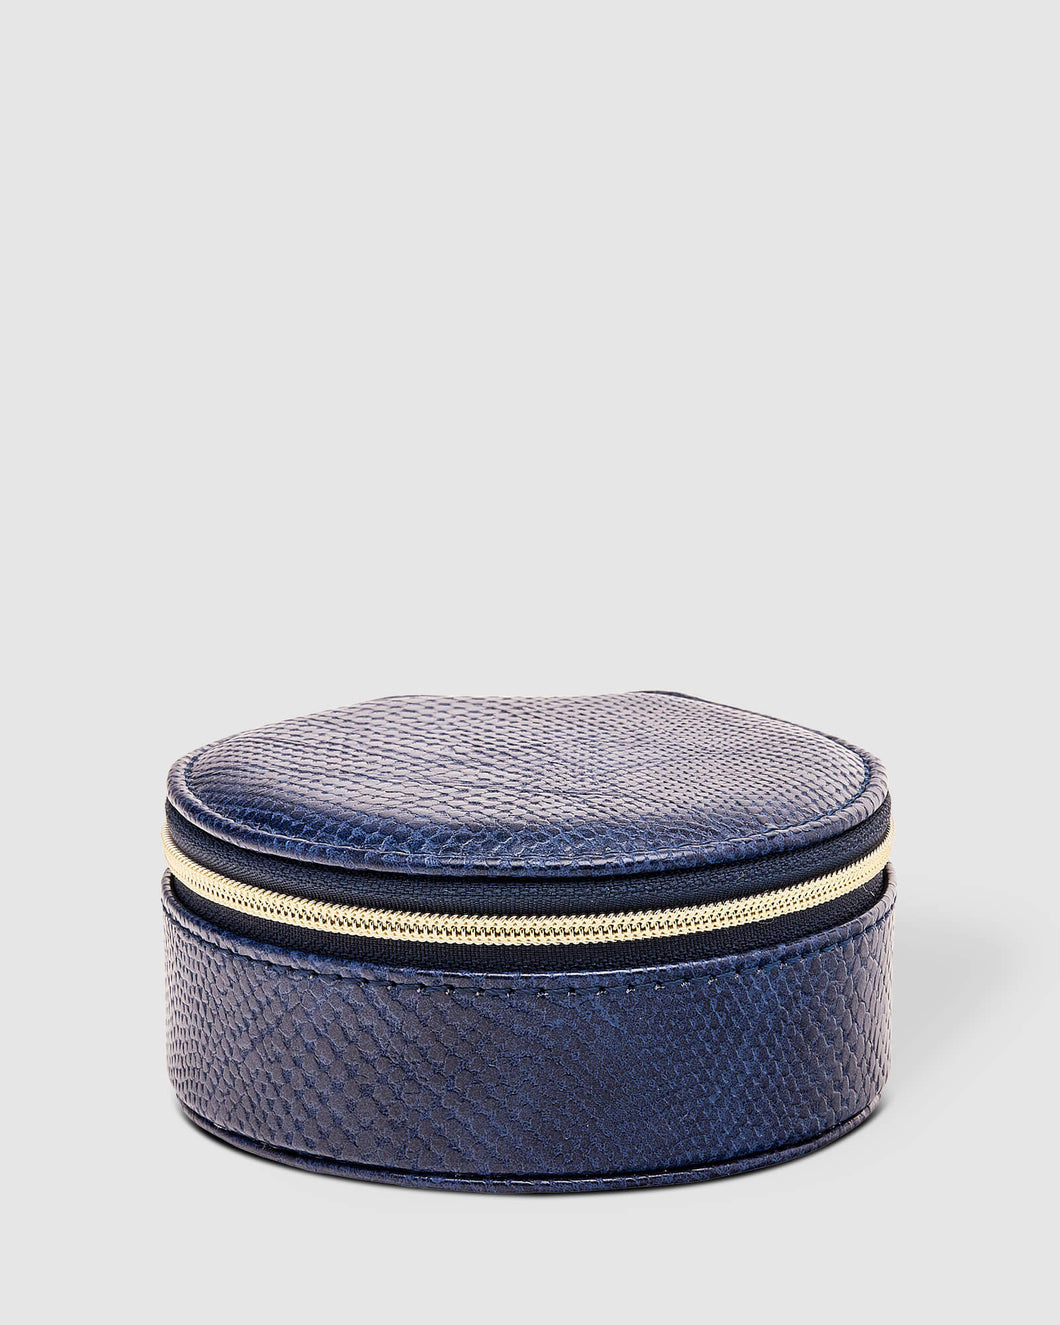 LOUENHIDE SISCO LIZARD JEWELLERY BOX - NAVY